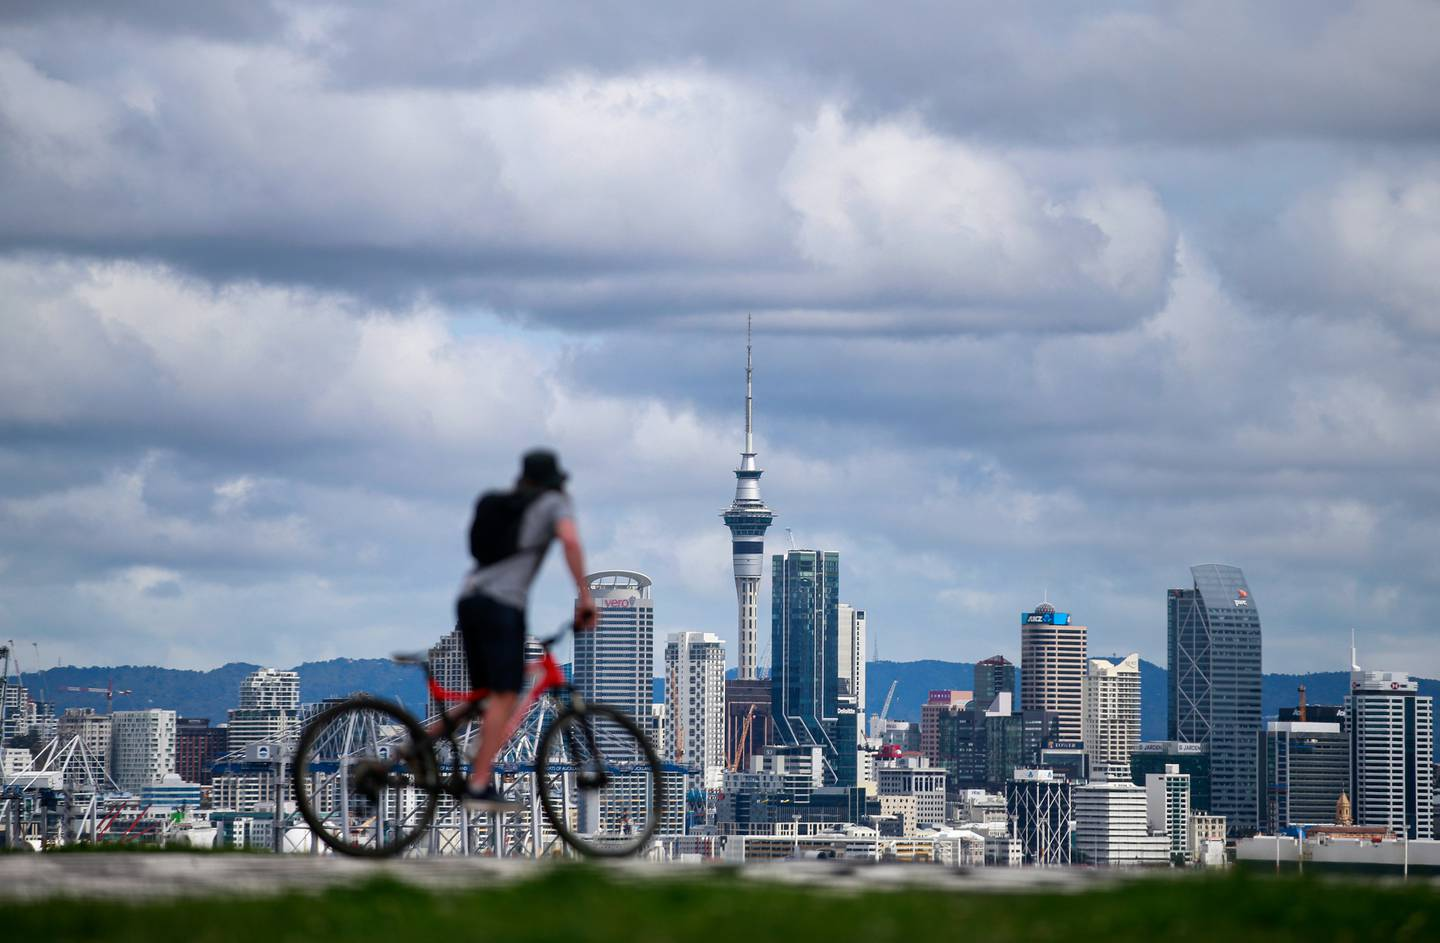 Aucklanders will find out today whether or not the city will come out of alert level 4 lockdown. Photo / Alex Burton